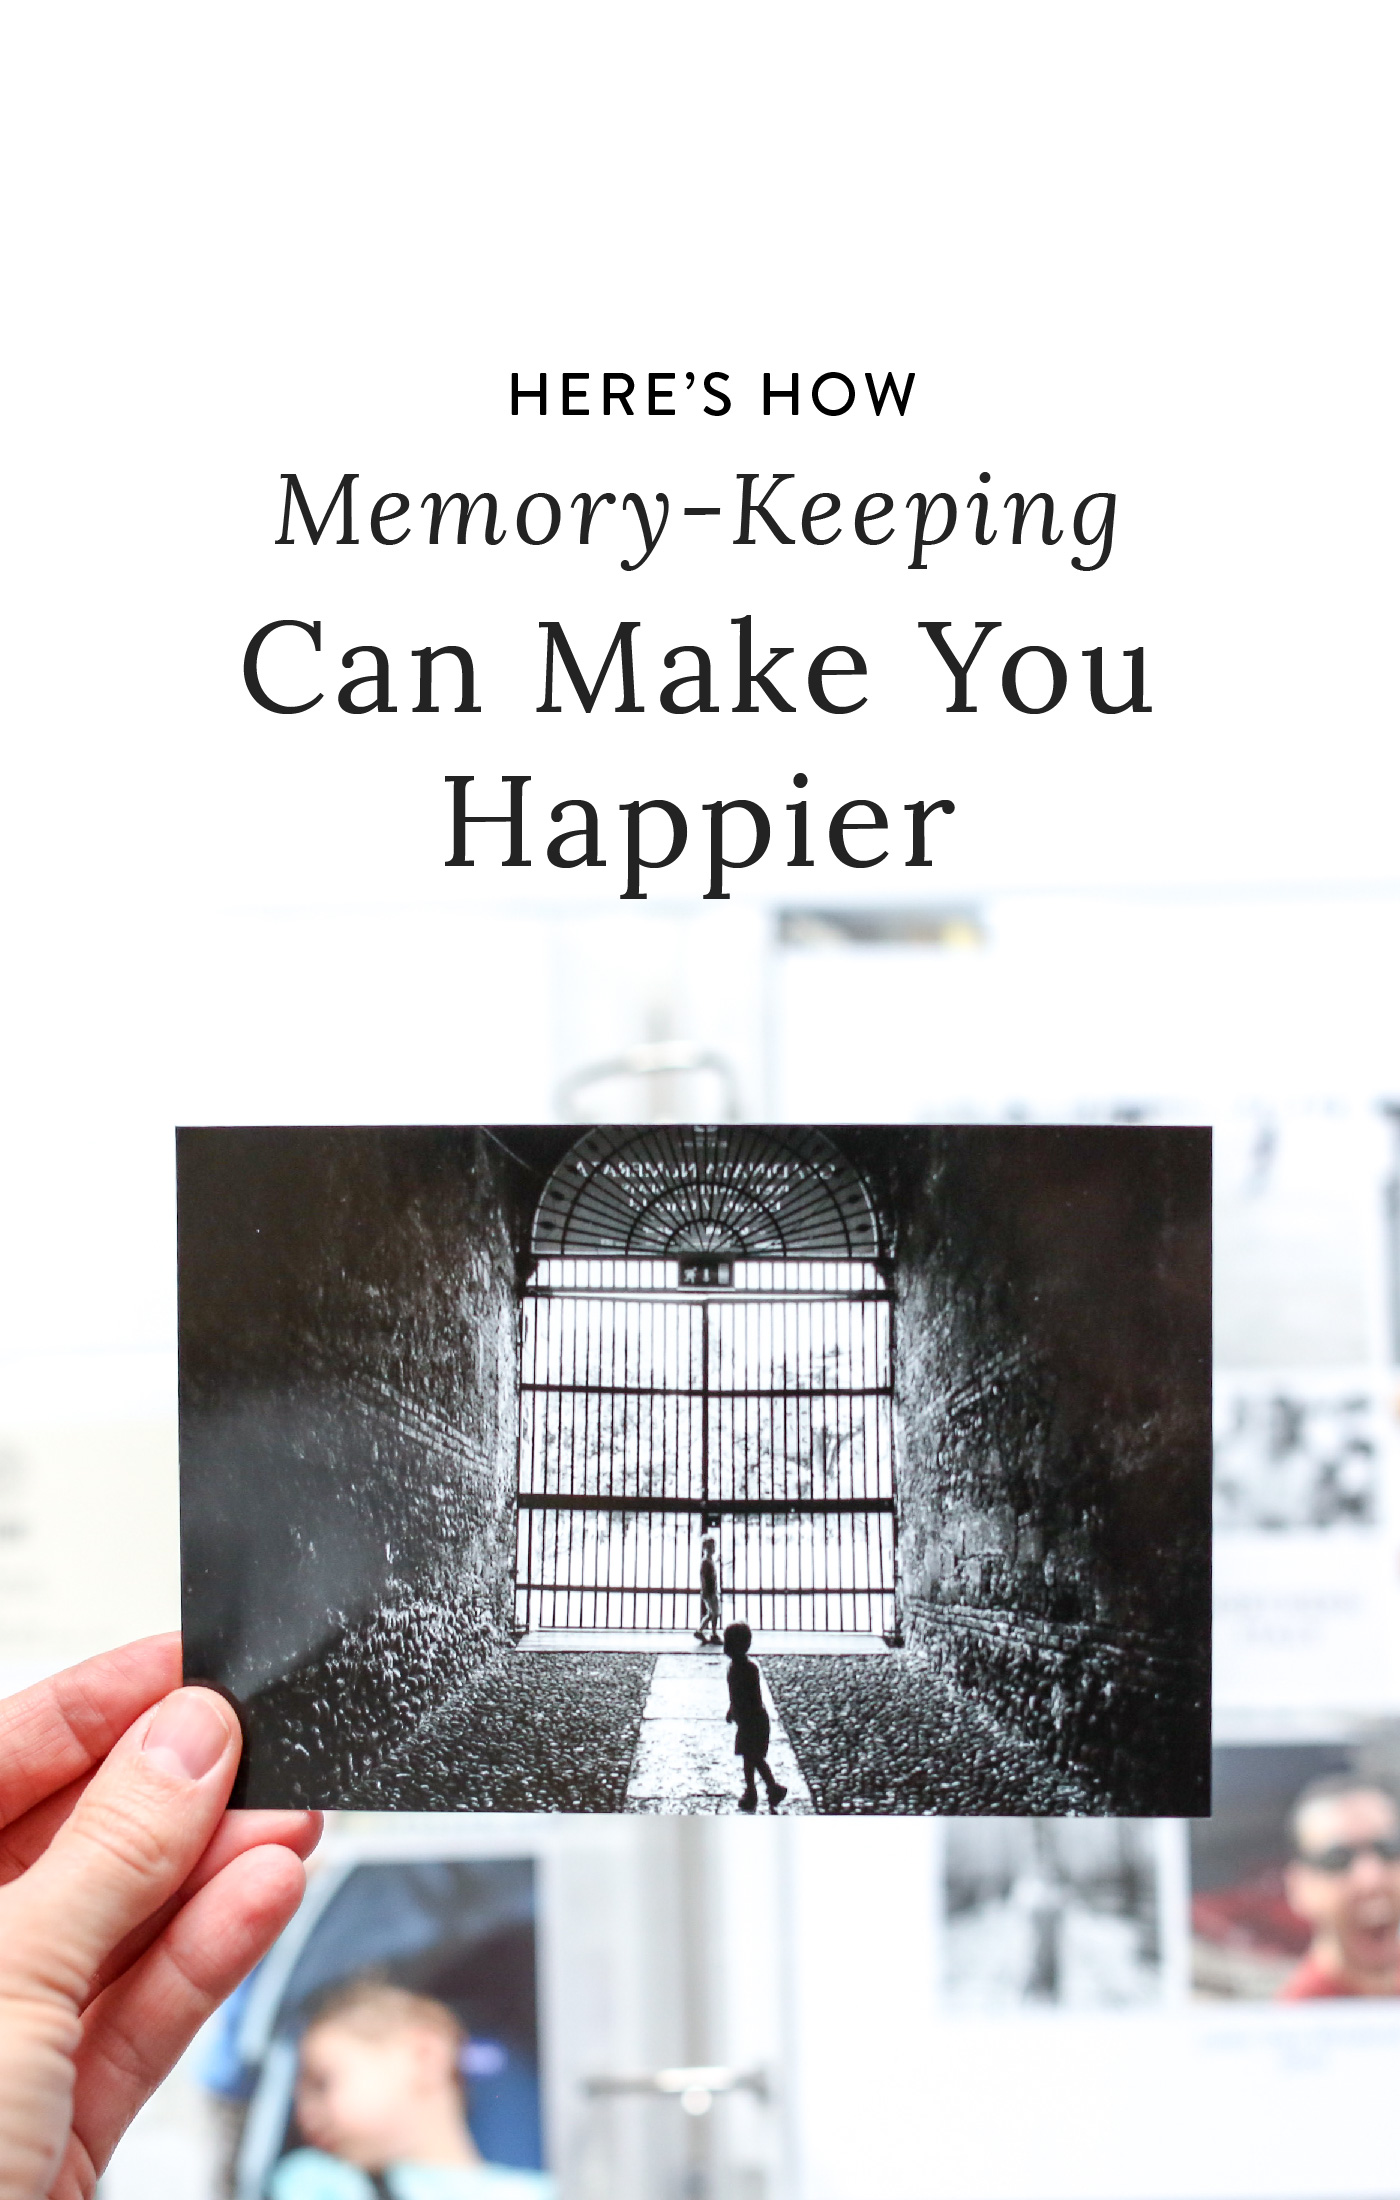 Here's how memory keeping can make you happier - video essay